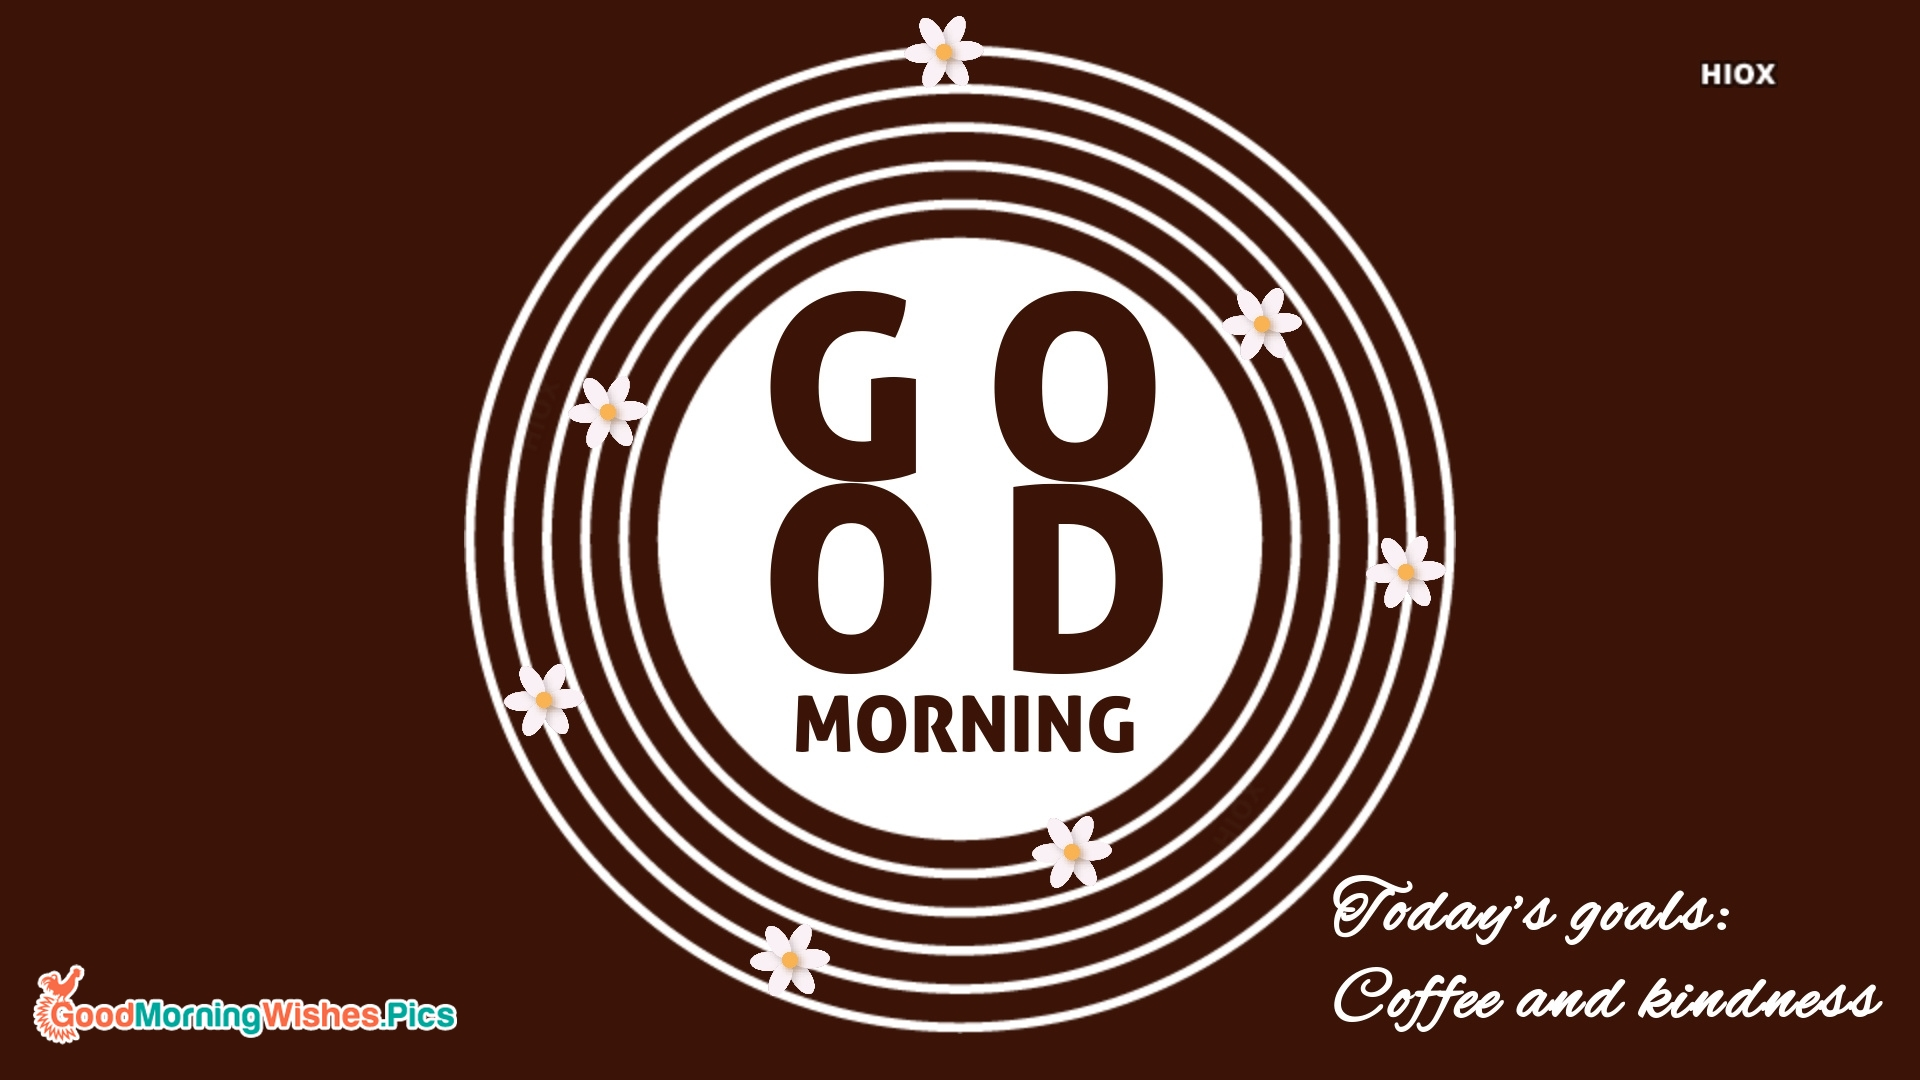 Good Morning Wishes with Coffee And Kindness